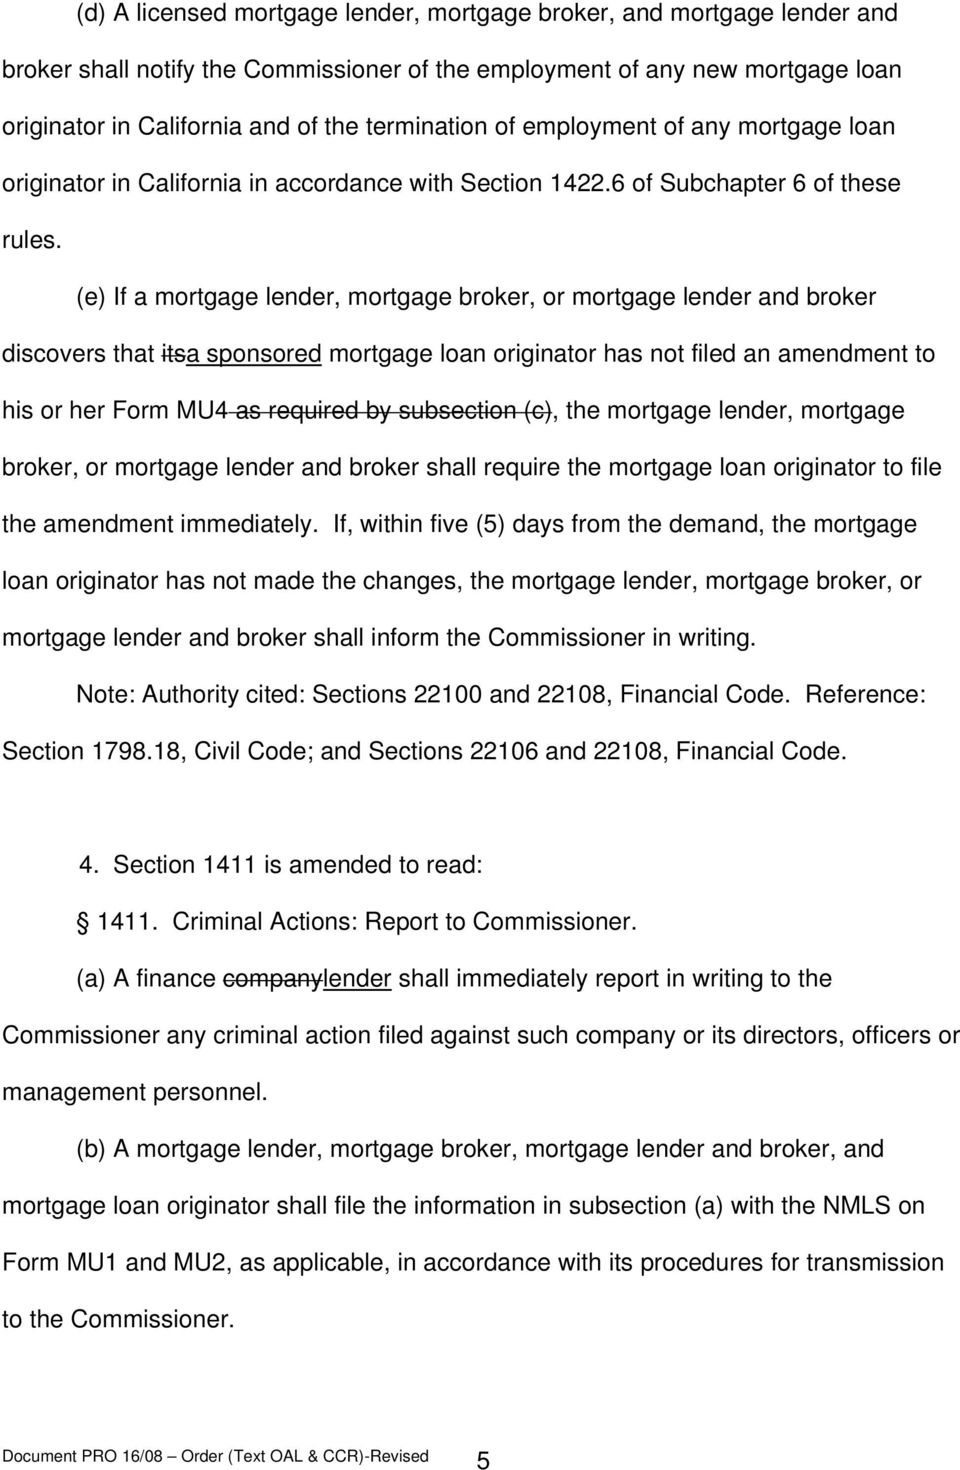 (e) If a mortgage lender, mortgage broker, or mortgage lender and broker discovers that itsa sponsored mortgage loan originator has not filed an amendment to his or her Form MU4 as required by